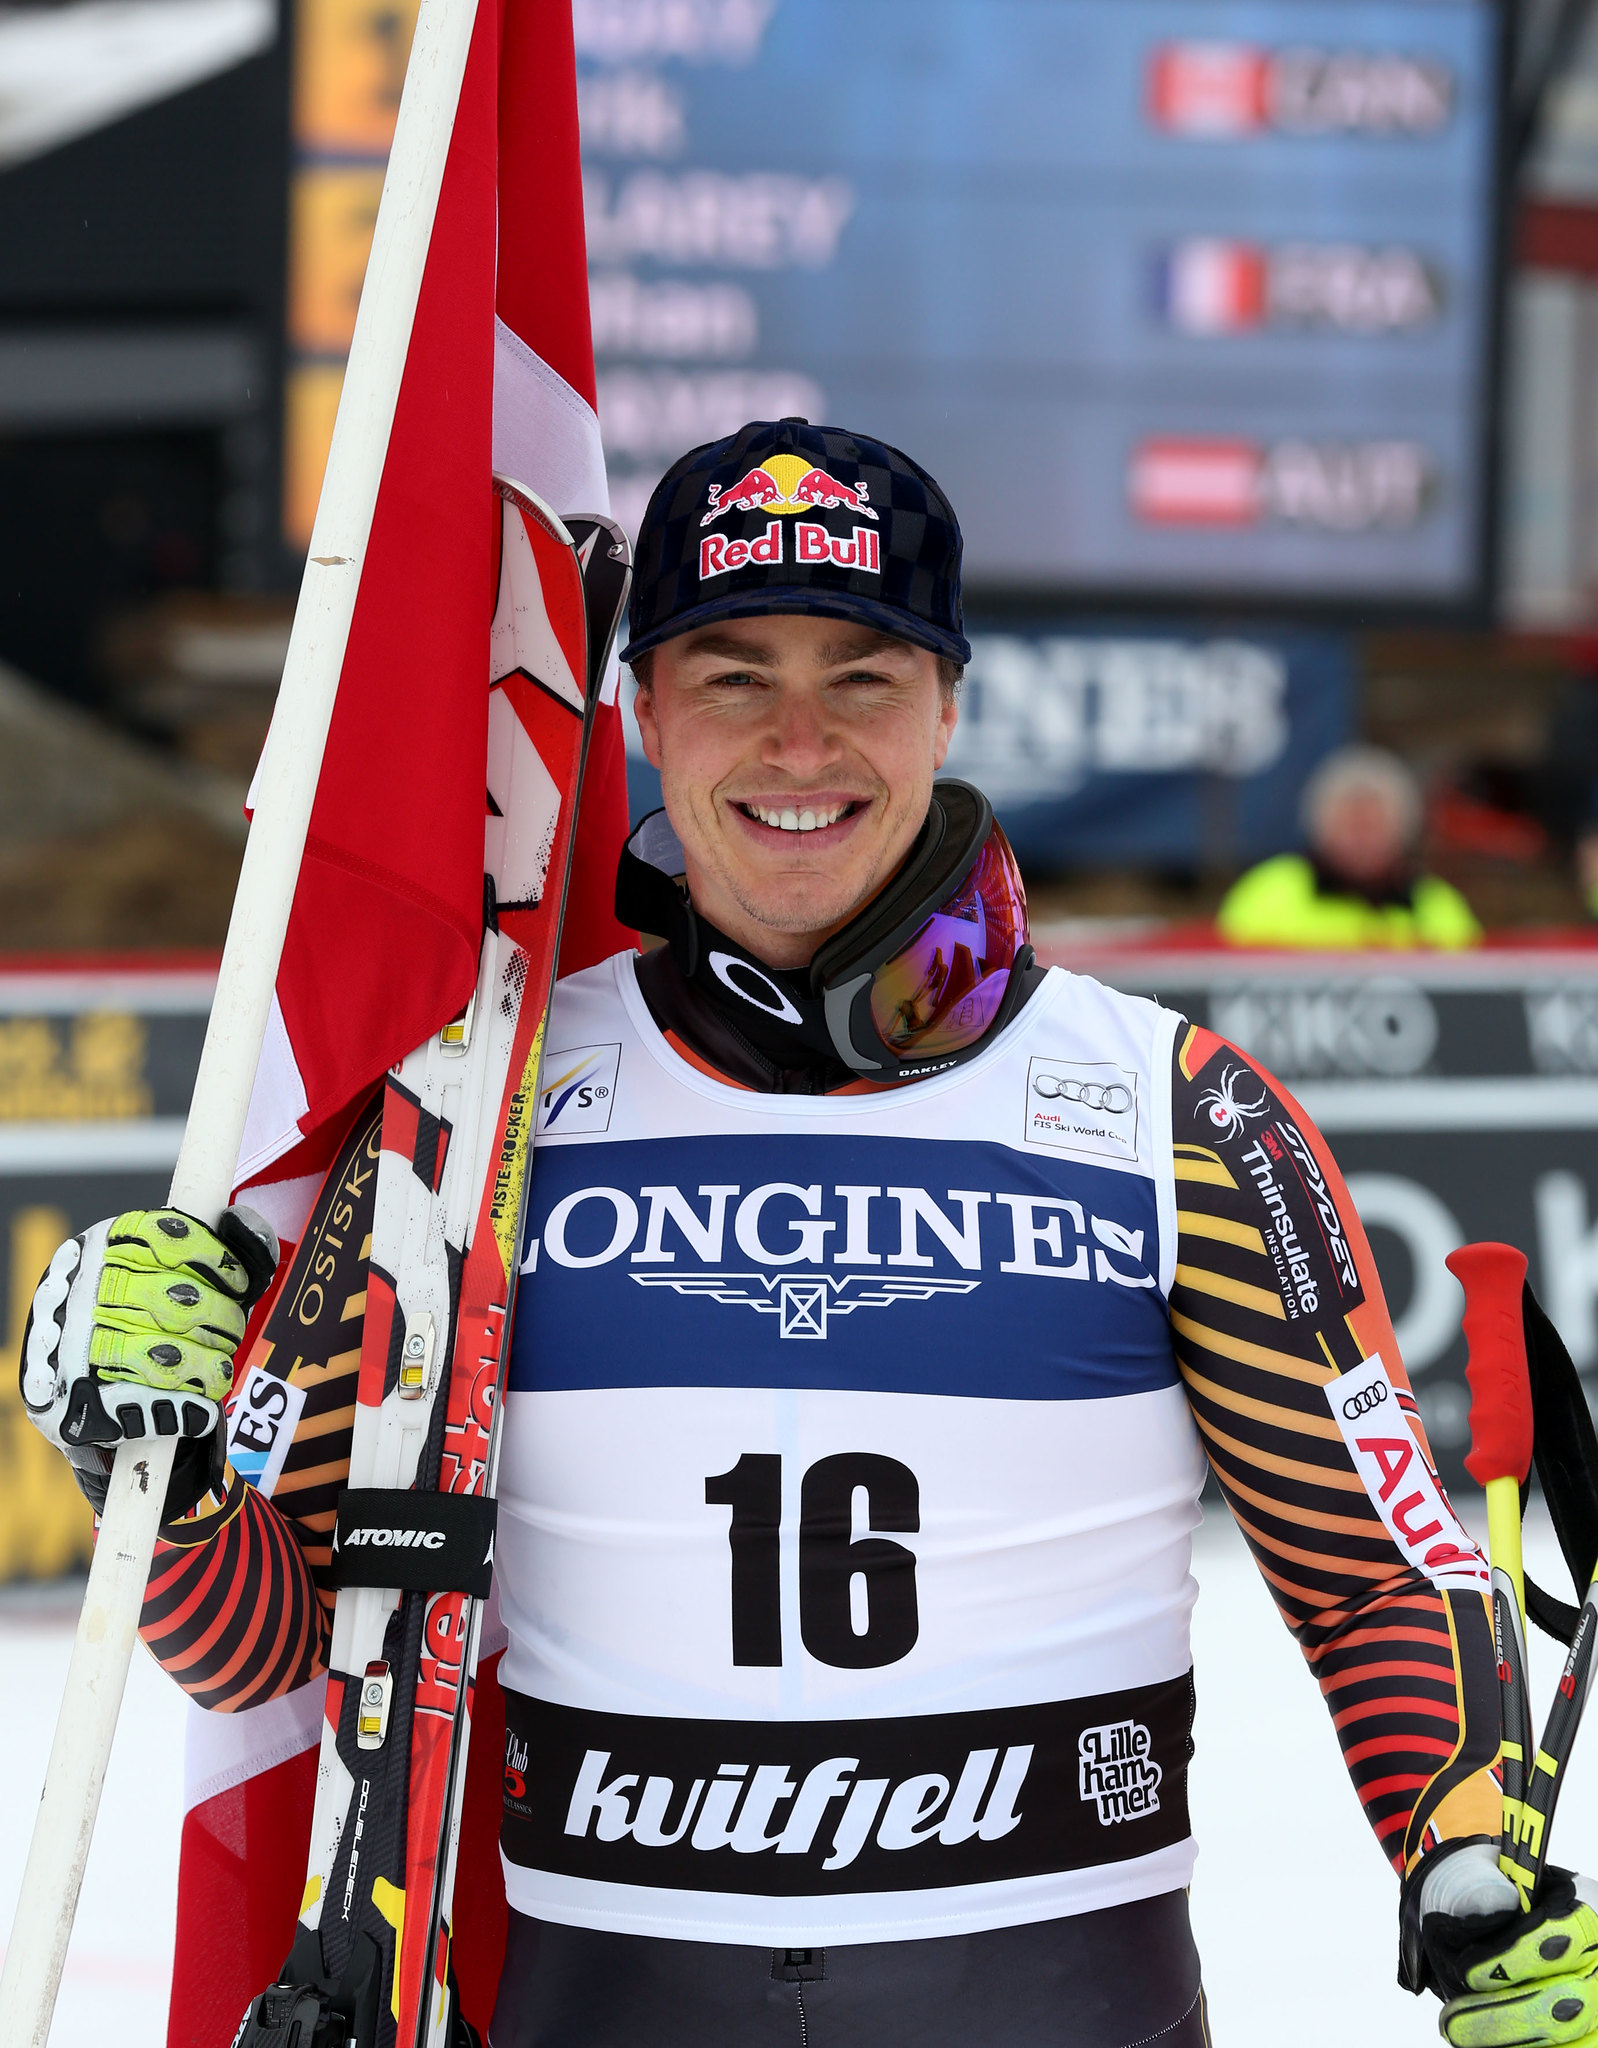 Guay celebrates his downhill victory in Kvitfjell, NOR